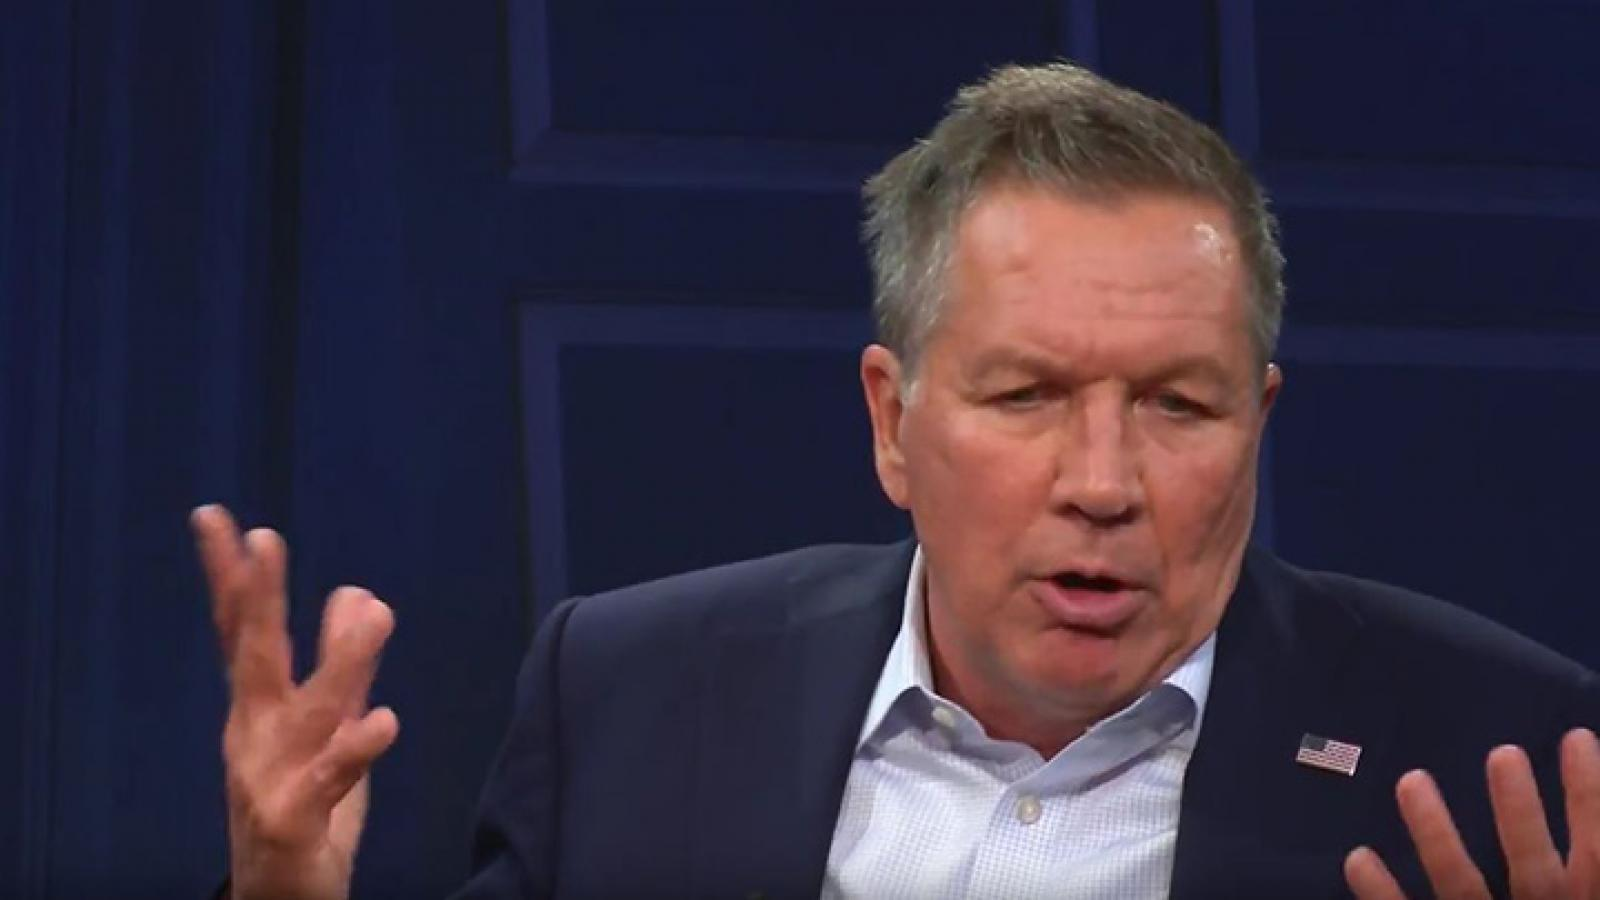 Ohio governor and Republican Party presidential candidate John Kasich takes questions from the American Forum studio audience